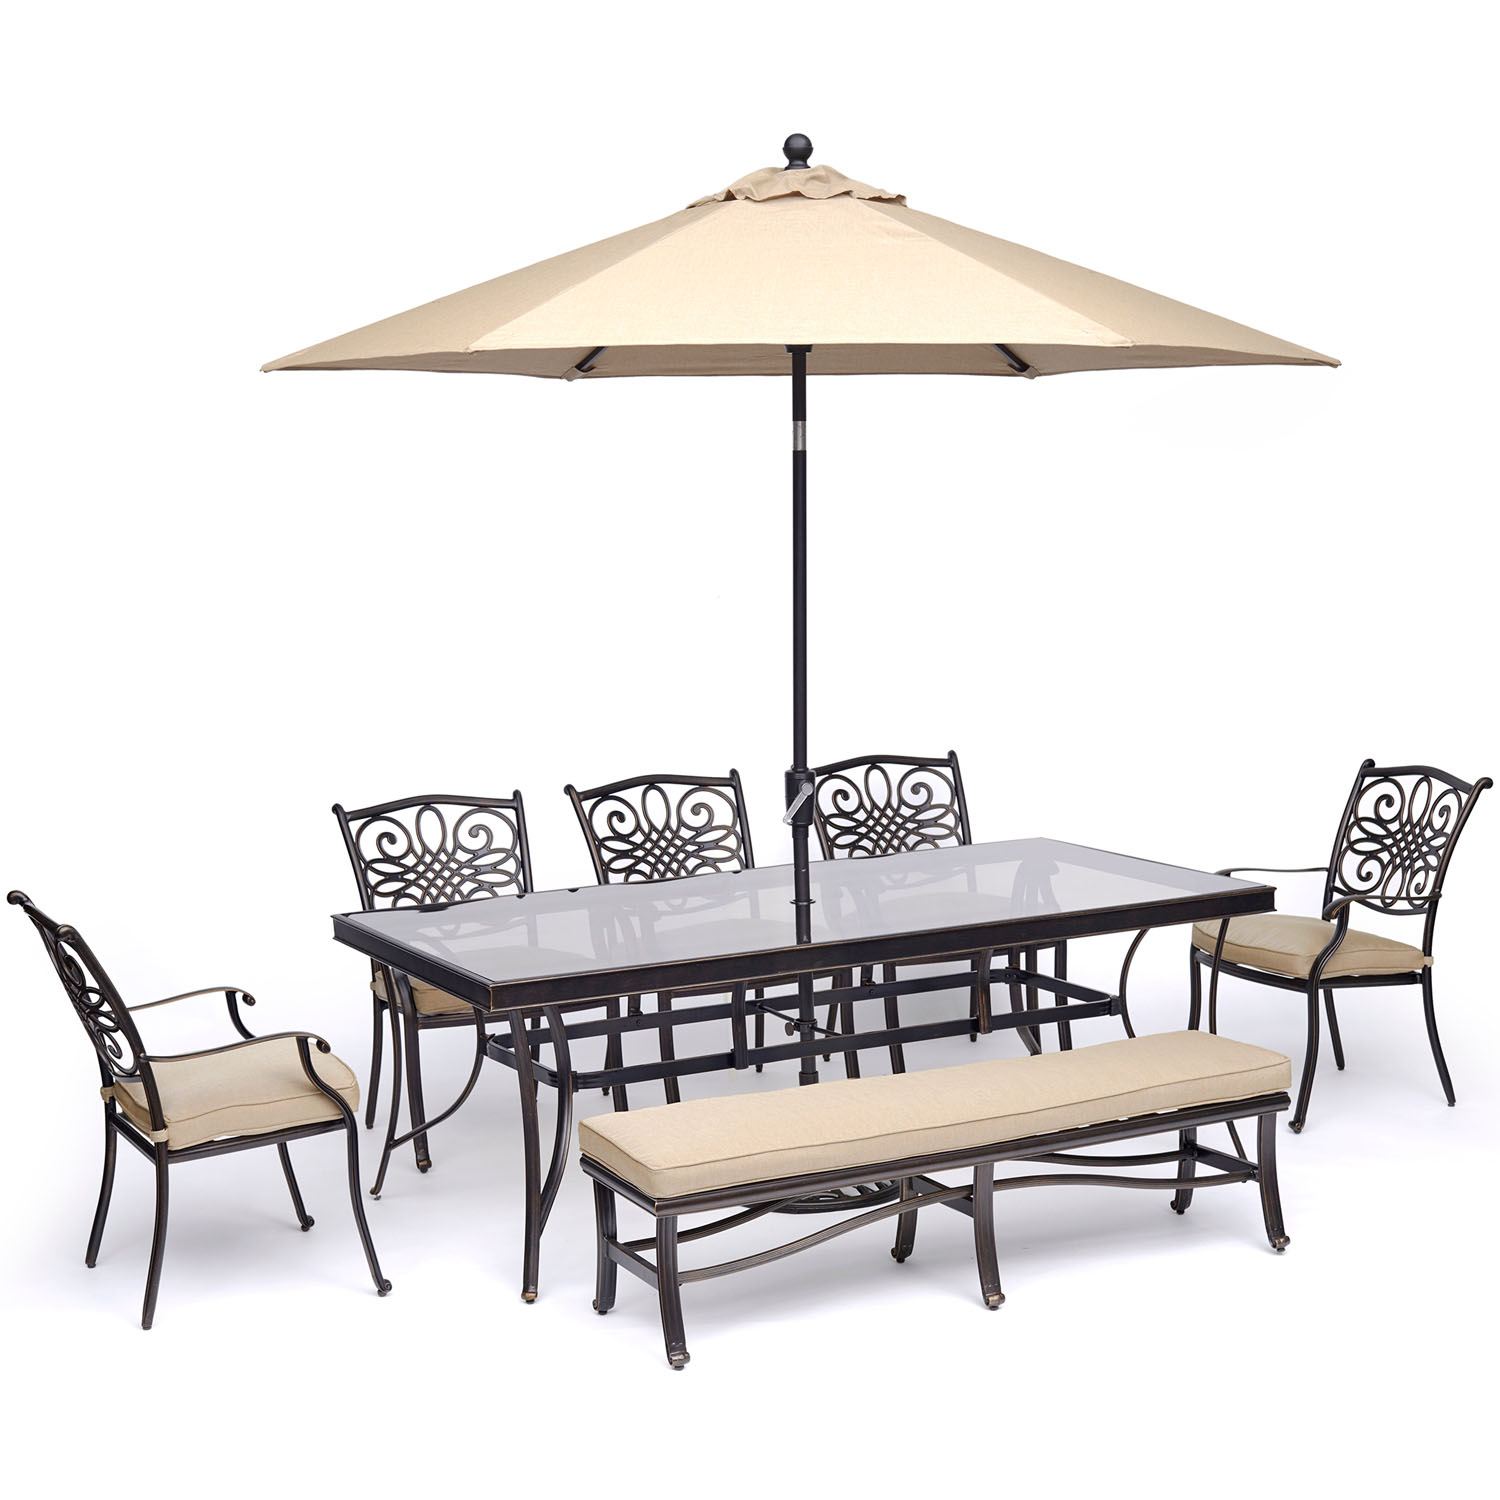 """Hanover Traditions 7-Piece Dining Set in Tan with 5 Chairs, Bench, a 42"""" x 84"""" Glass-Top Table, and an 11 Ft. Umbrella with Stand"""